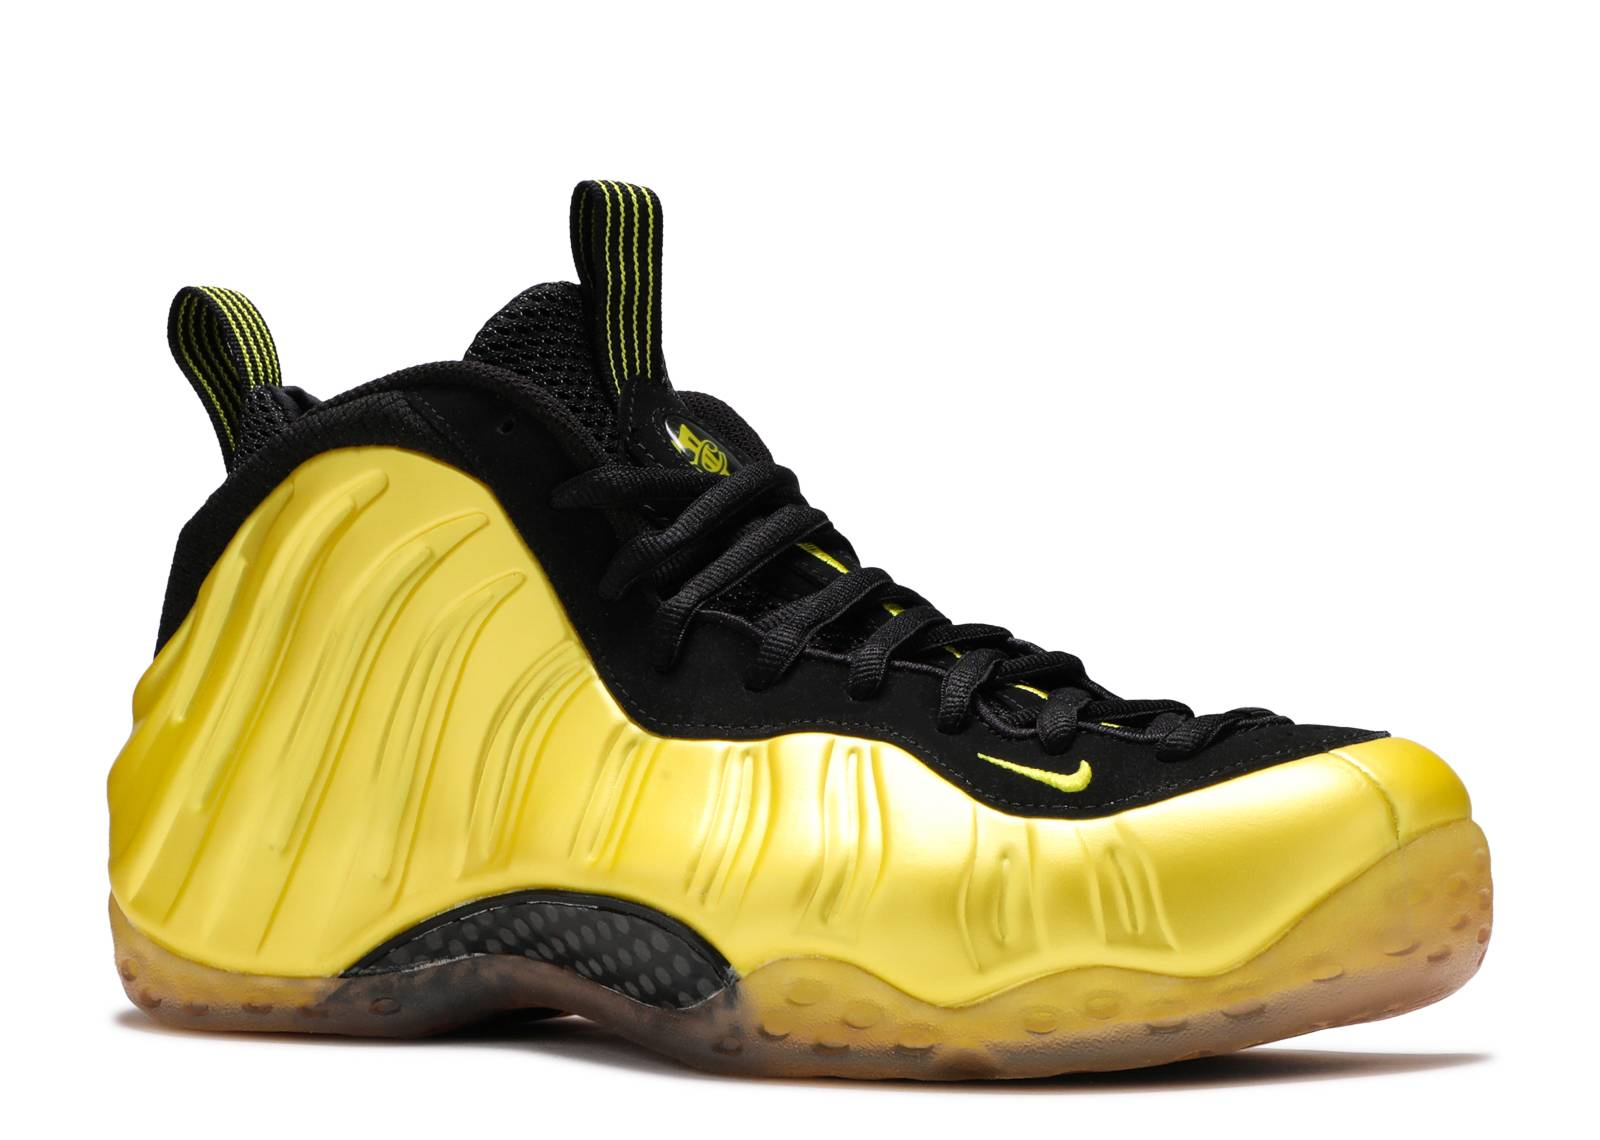 7e8677f0005e0 Air Foamposite One